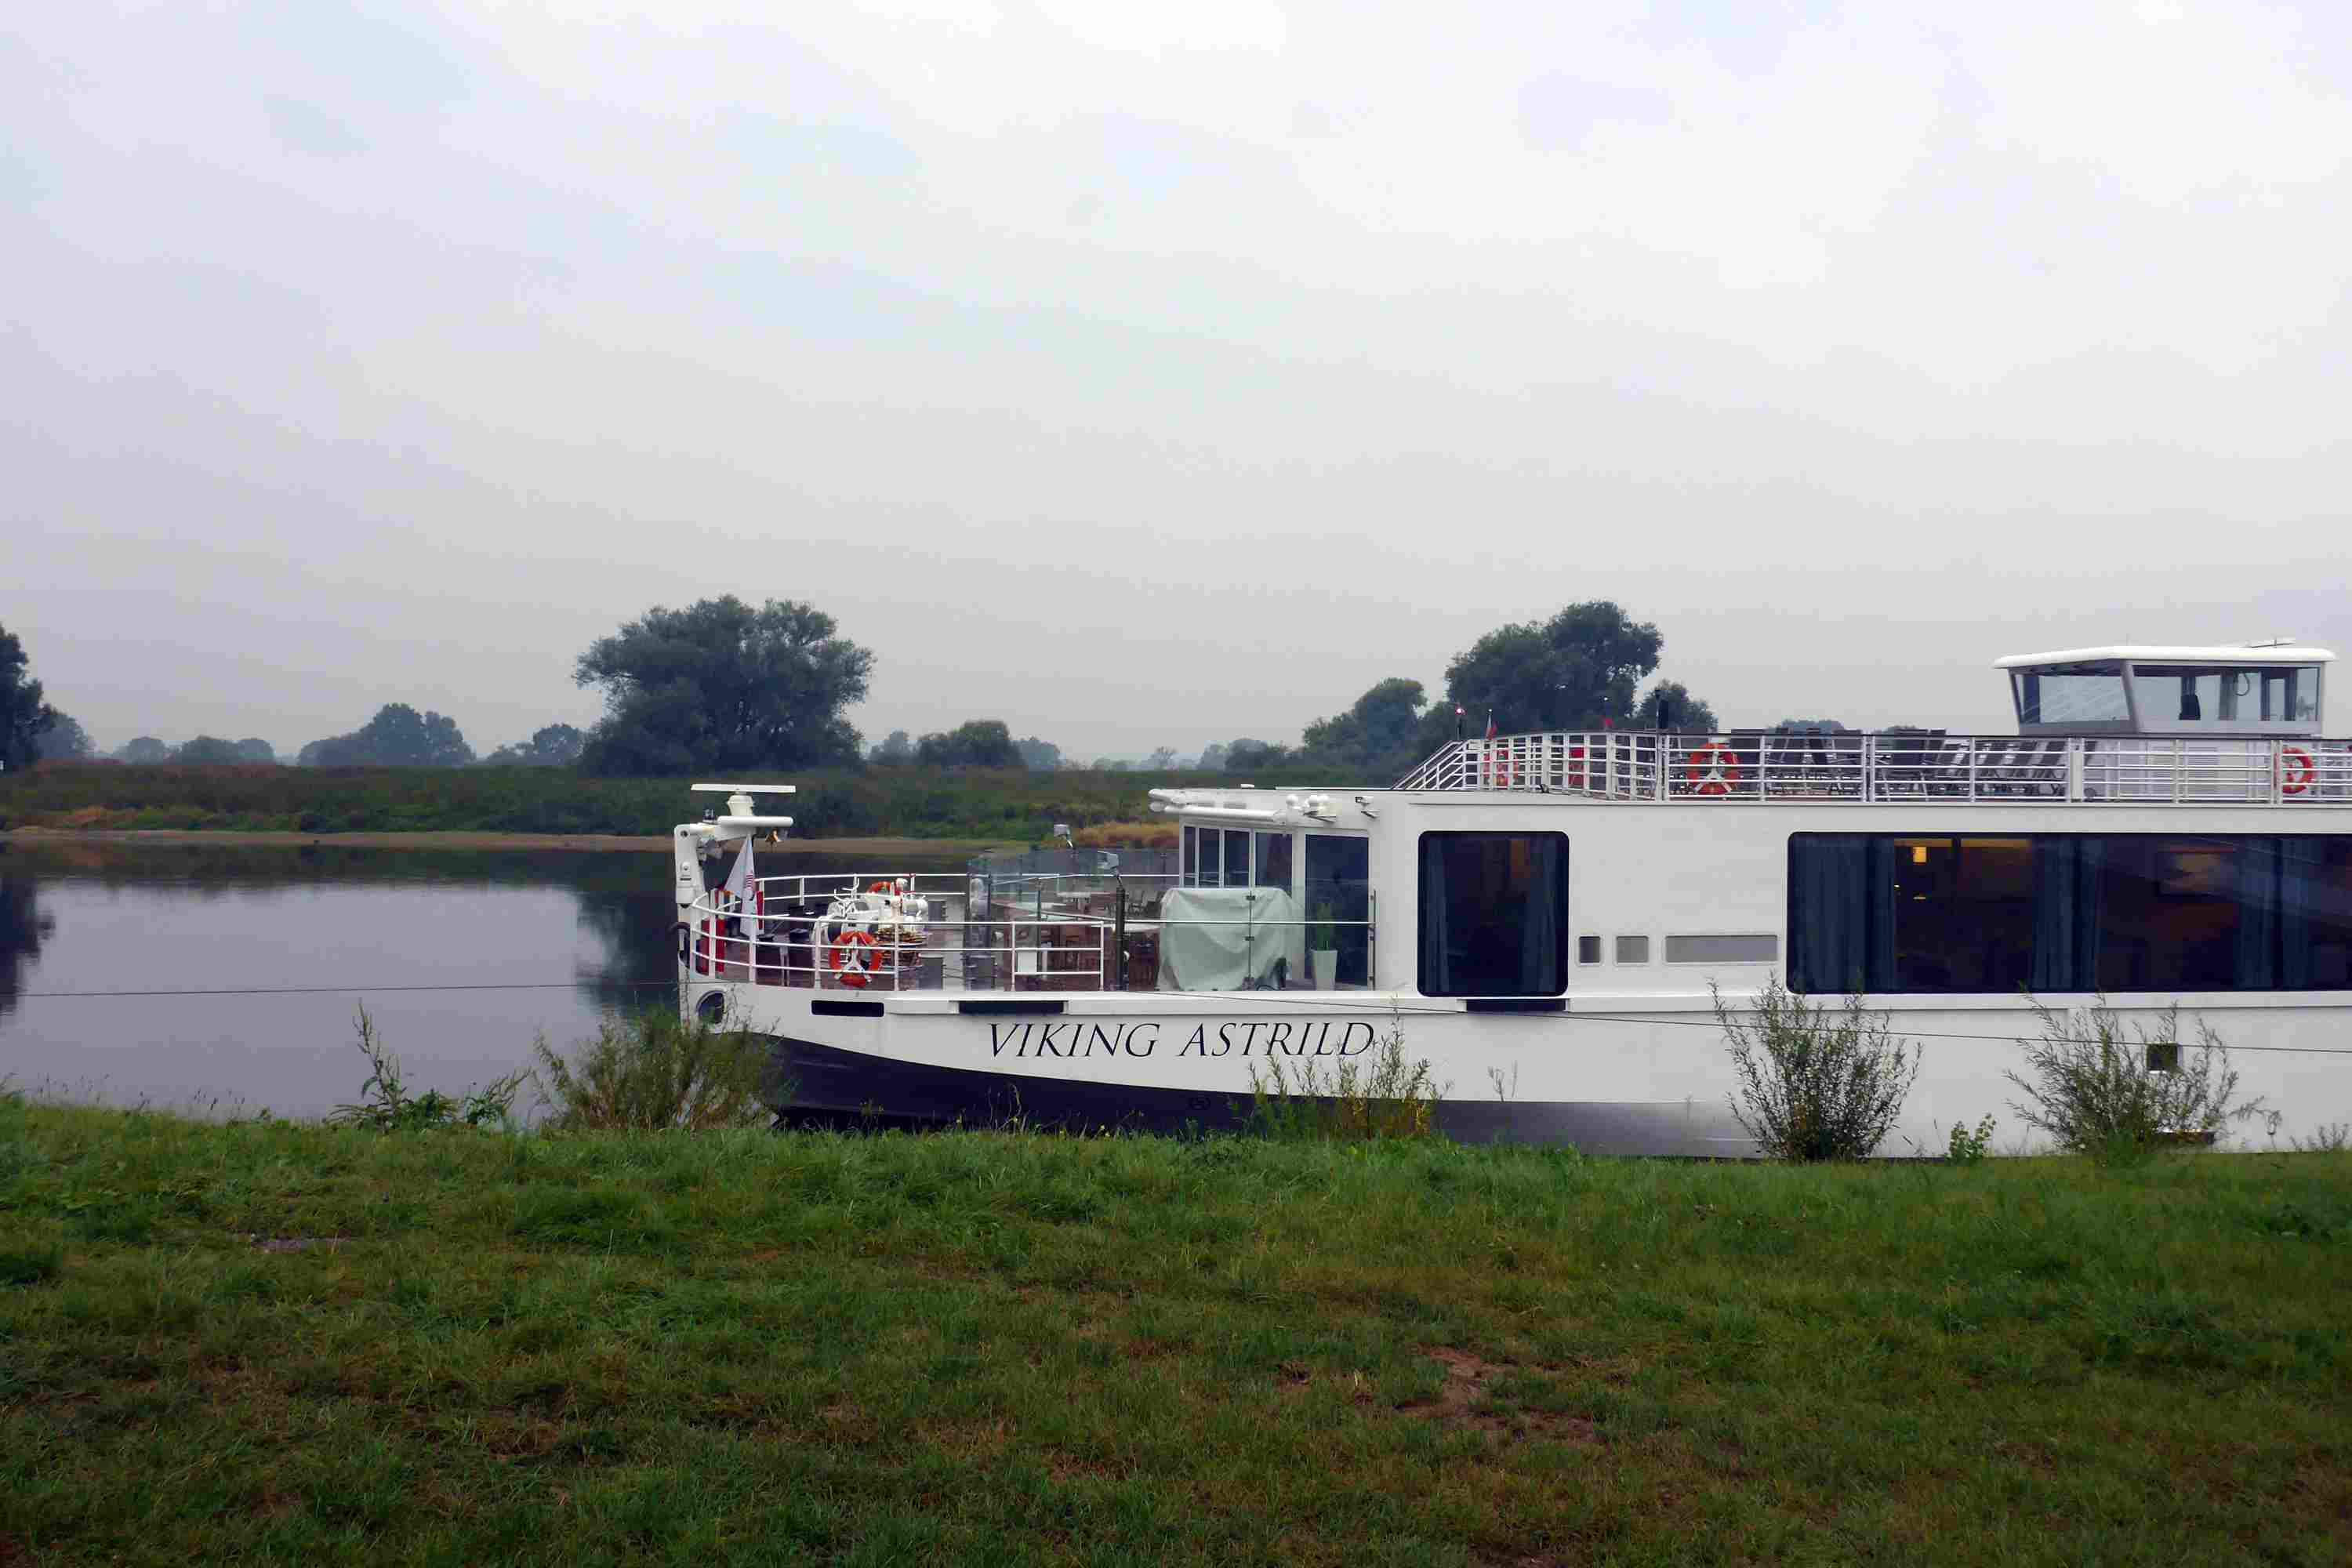 Viking Astrild on the Elbe River in Germany